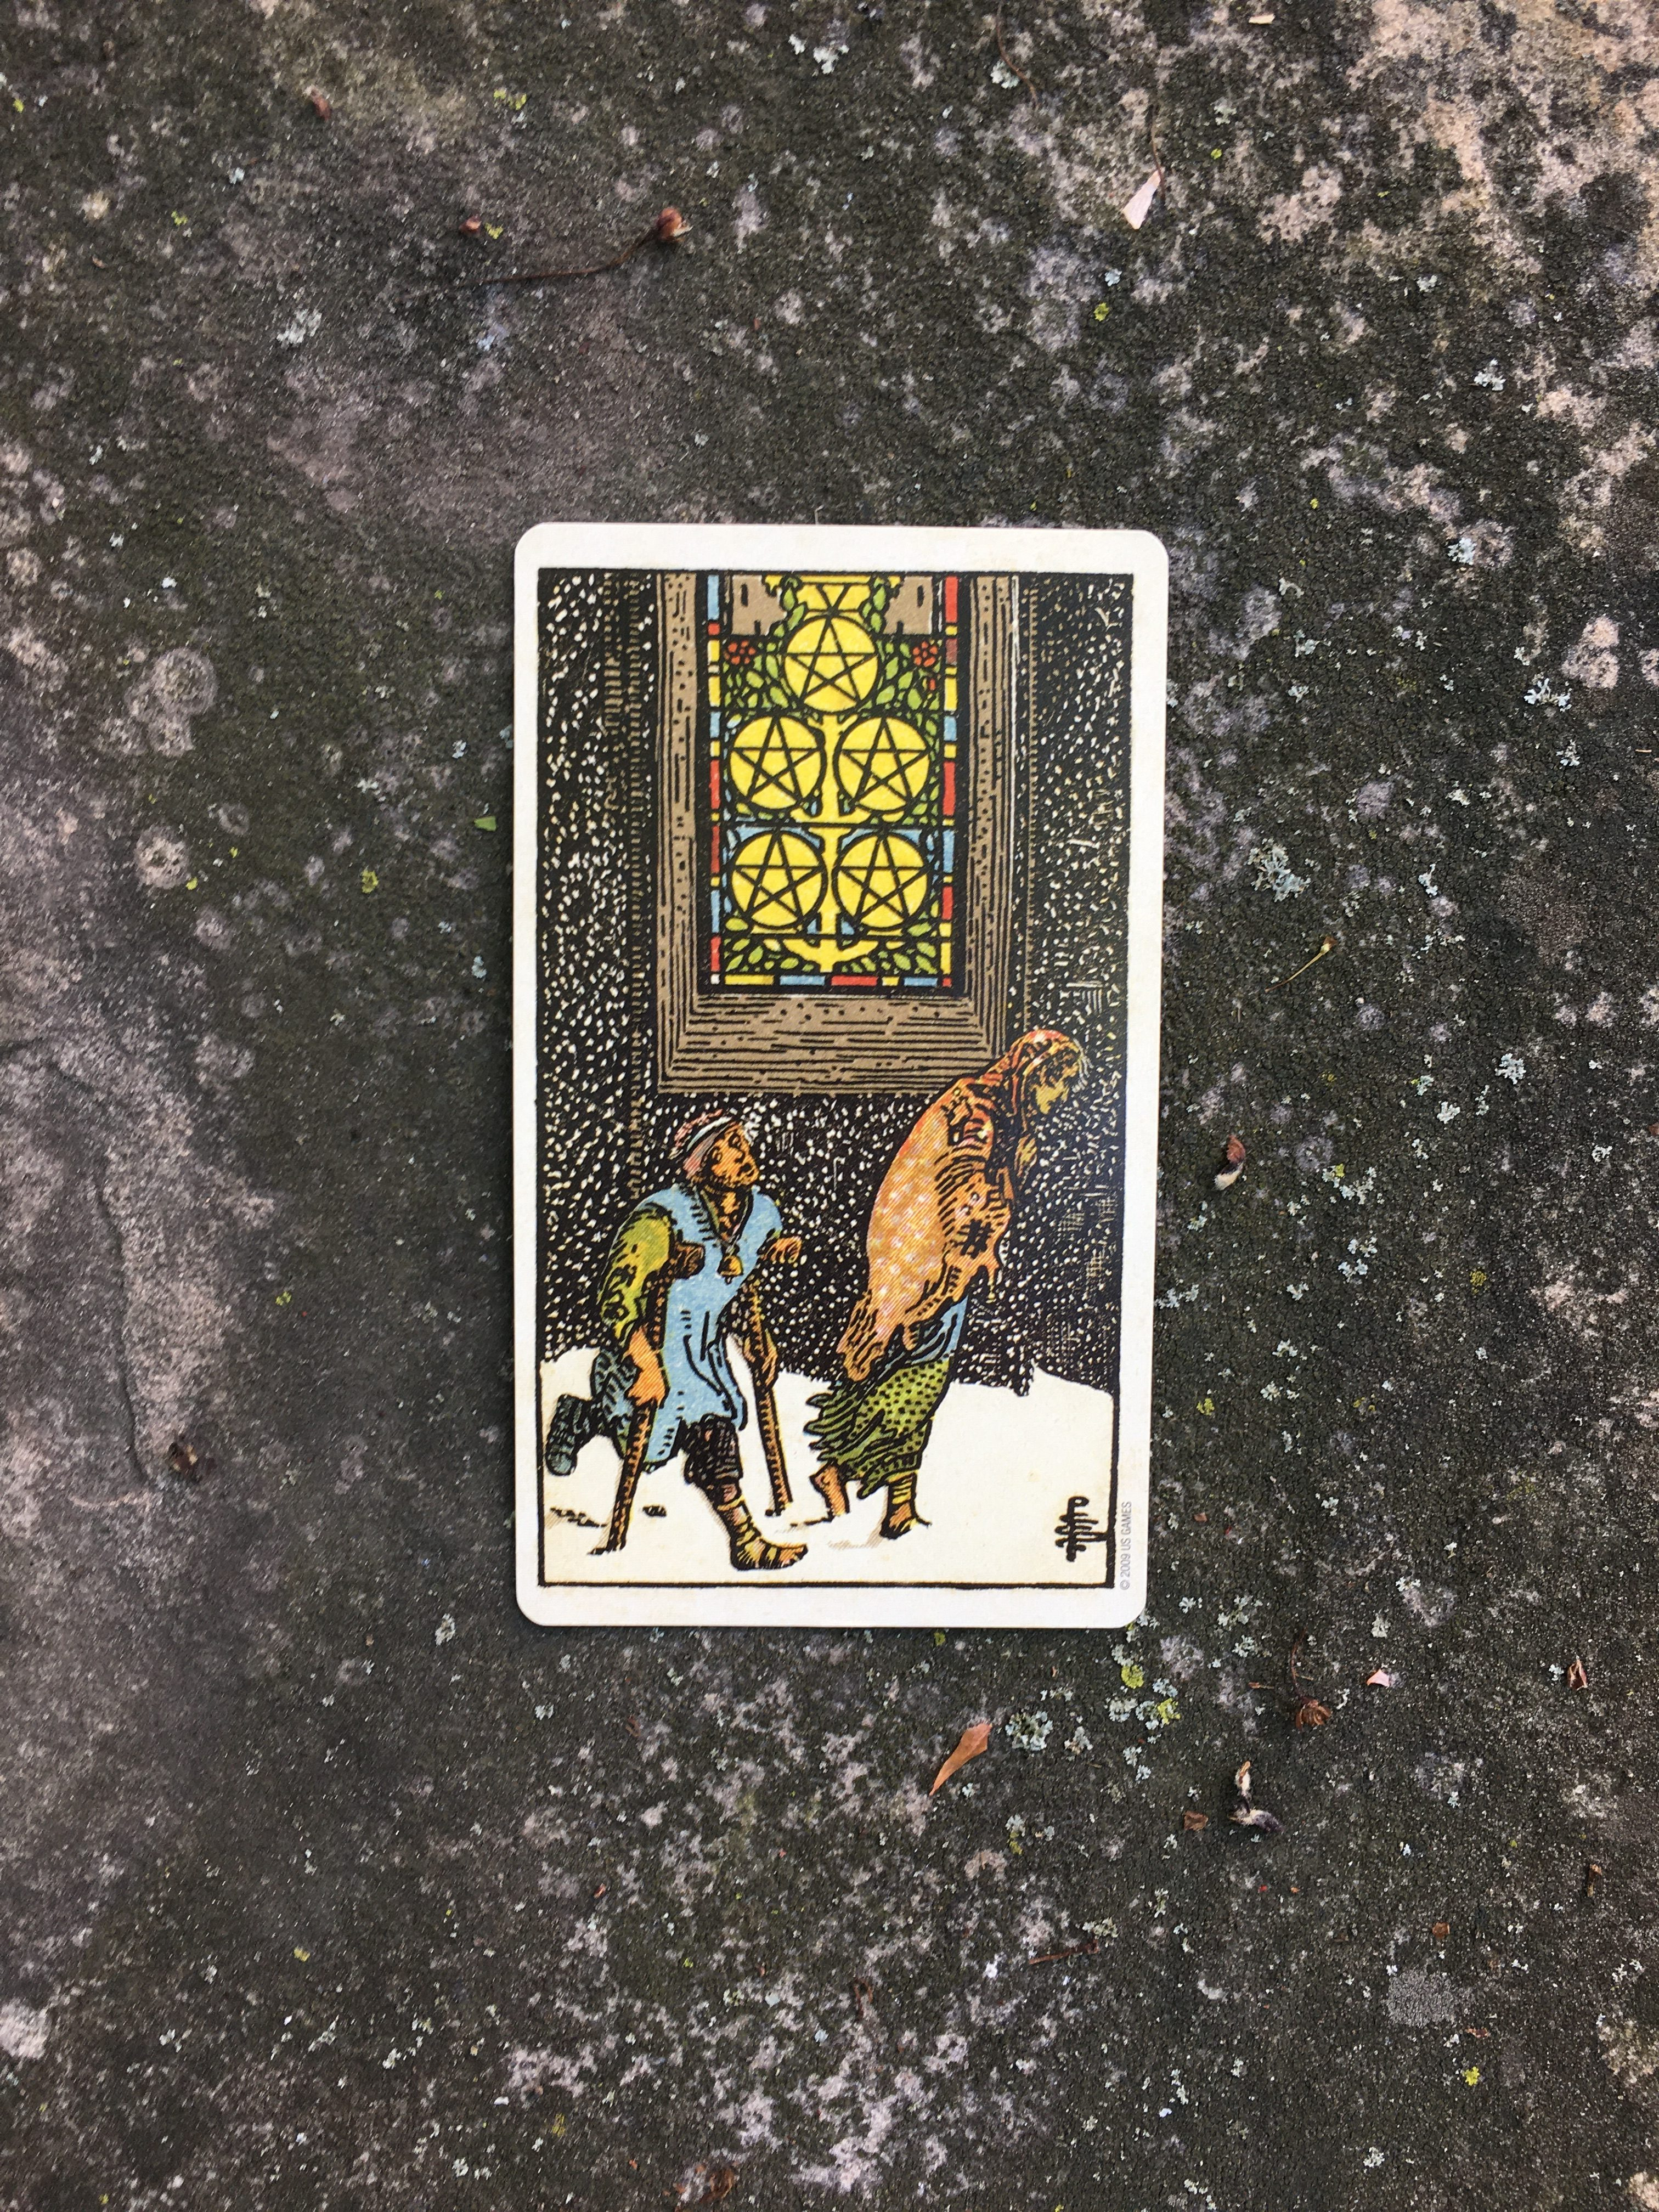 Tarot for Mindfulness and the Five of Pentacles: An Ally in Unpacking Our Discomfort